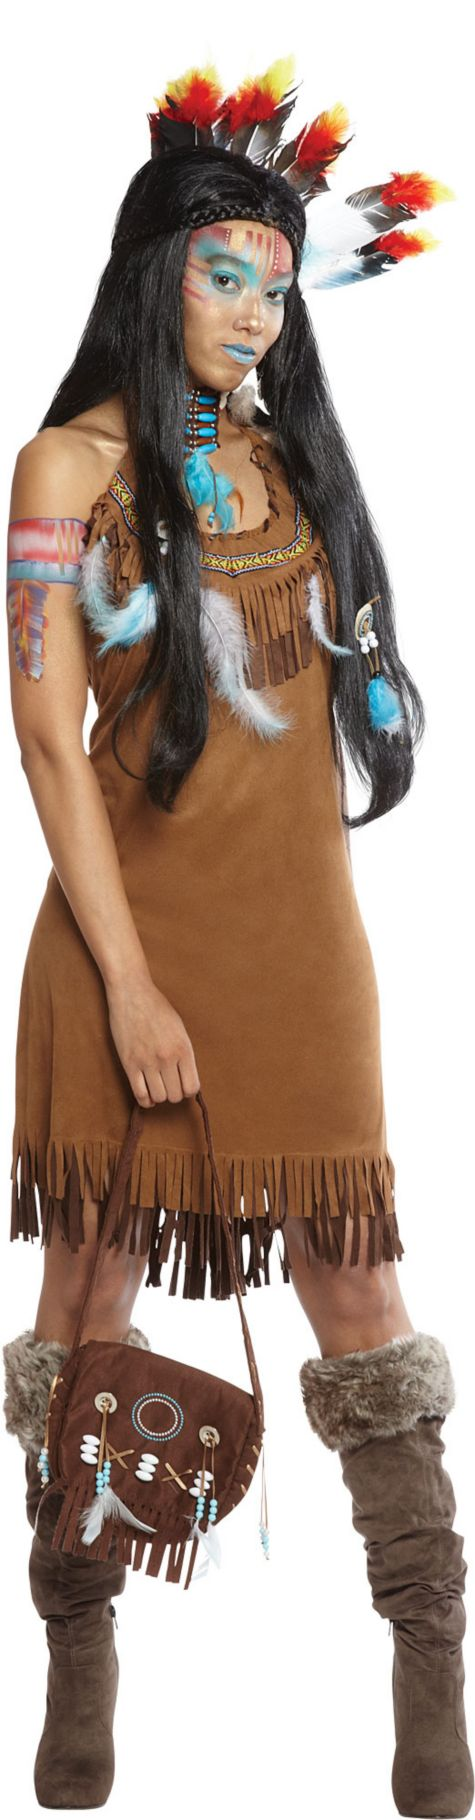 Native American Costume for Women - Party City